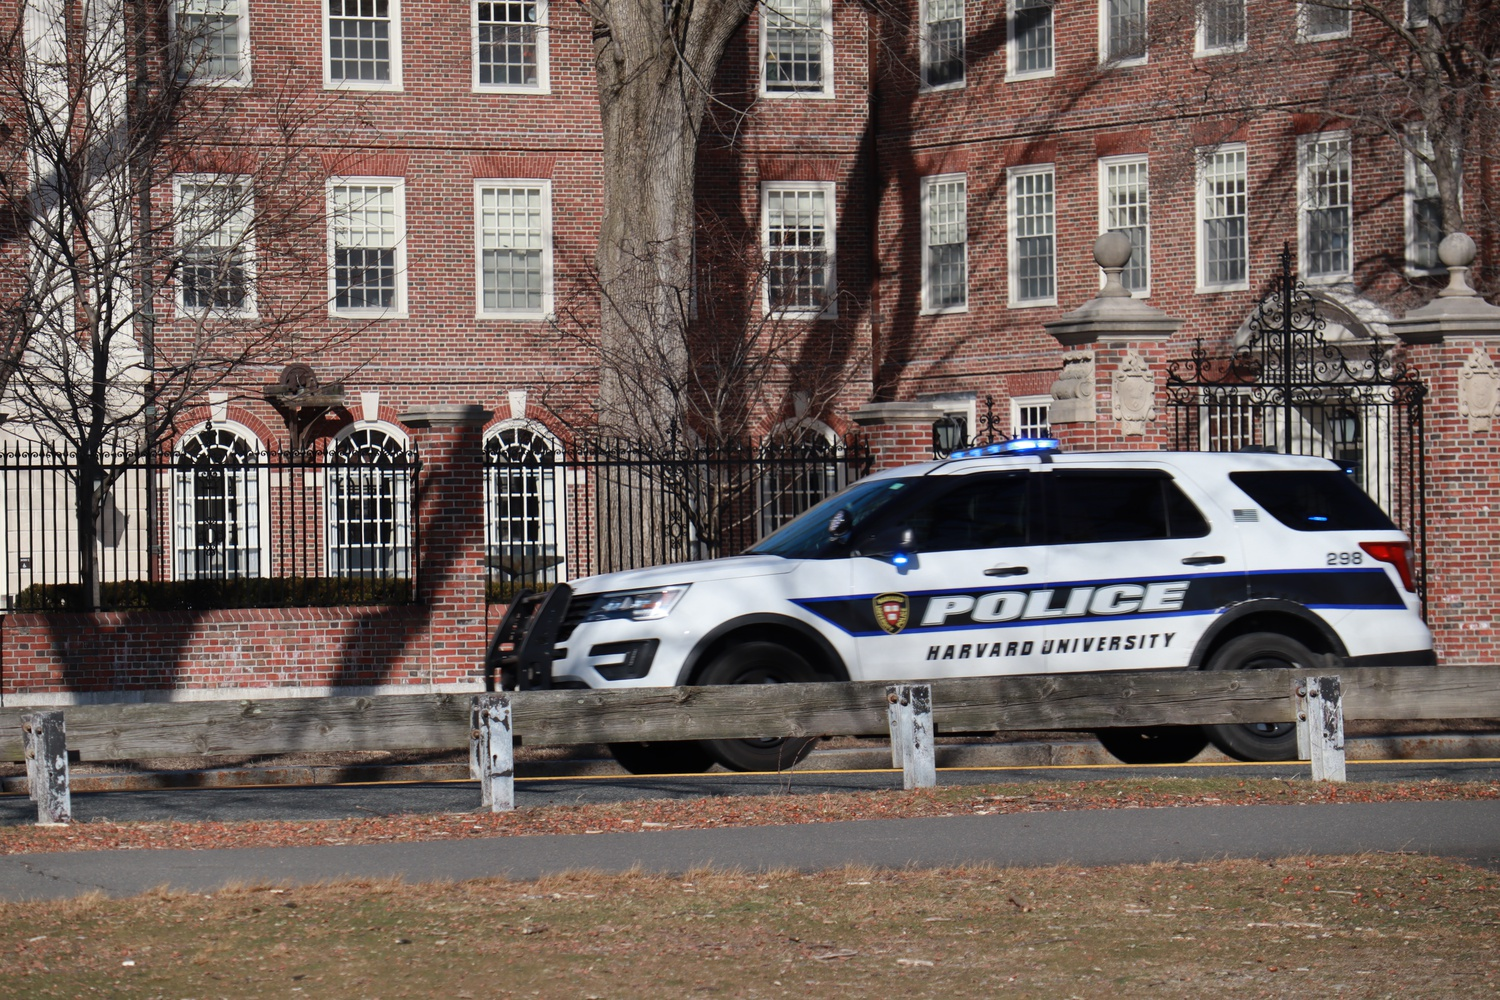 The Harvard University Police Association union reported doubts about an ongoing review about the department.